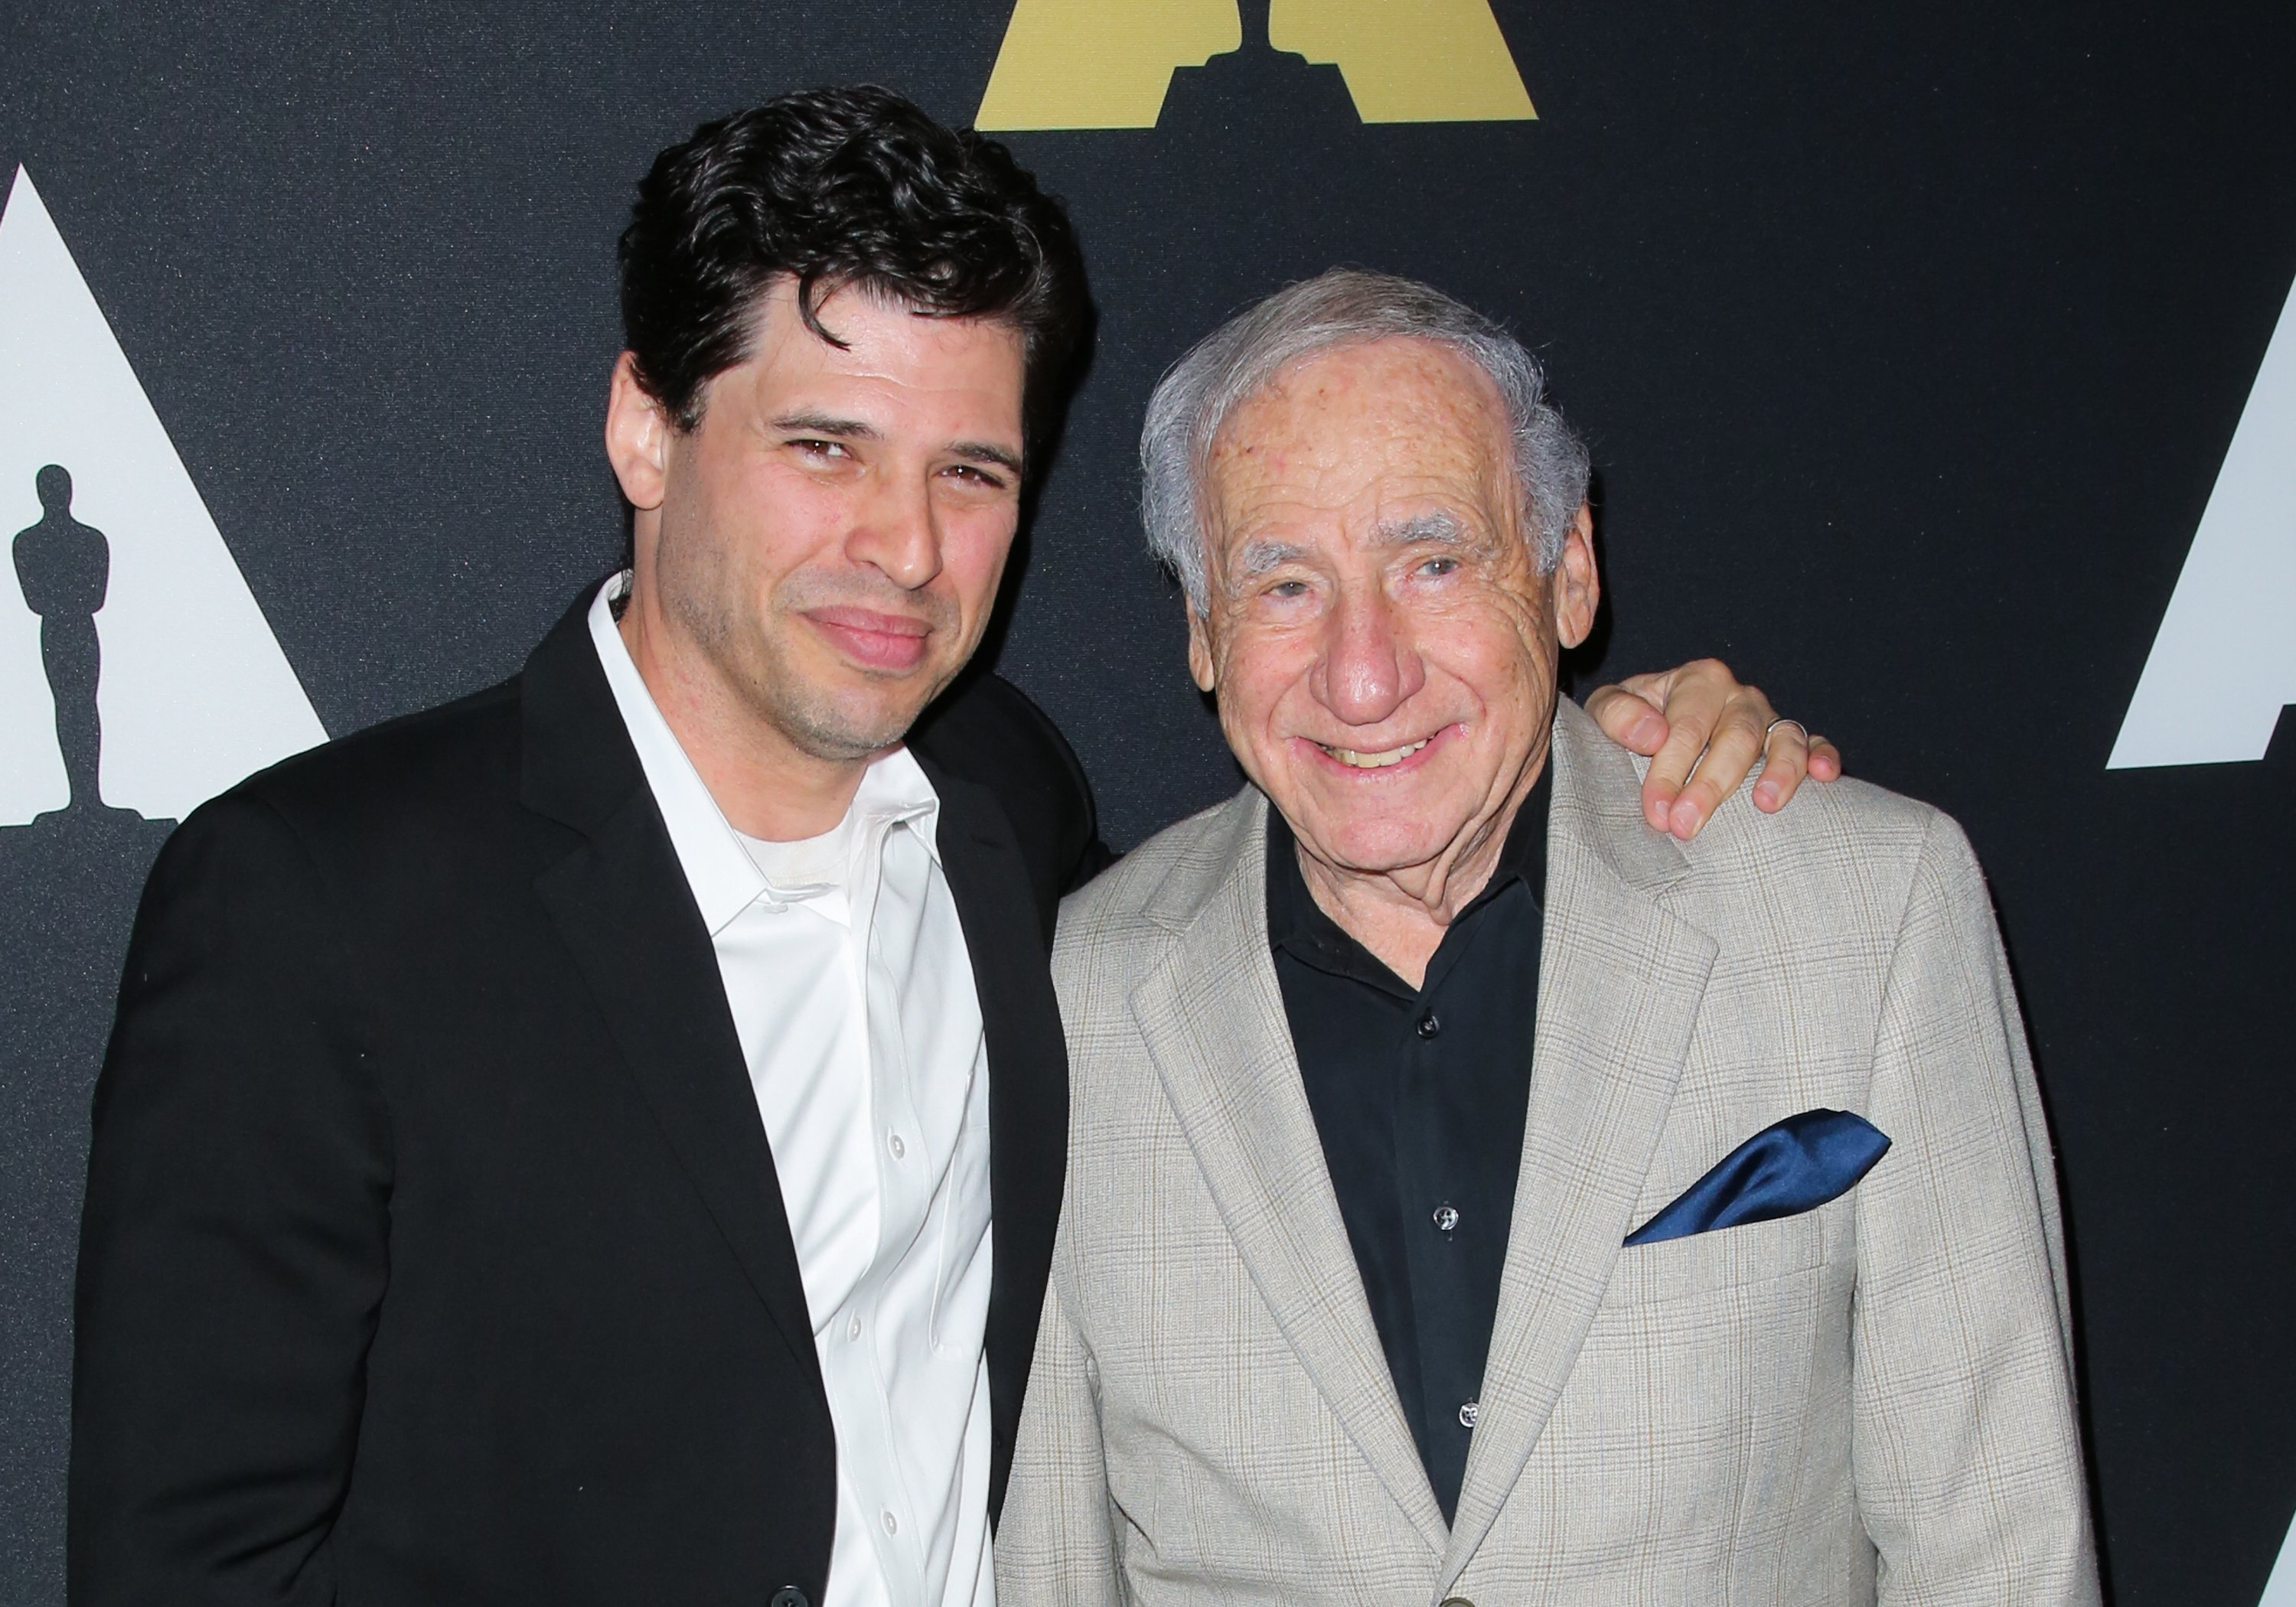 """Max and Mel Brooks at the 20th anniversary screening of """"The Shawshank Redemption"""" at the AMPAS Samuel Goldwyn Theater on November 18, 2014 in Beverly Hills, California. 